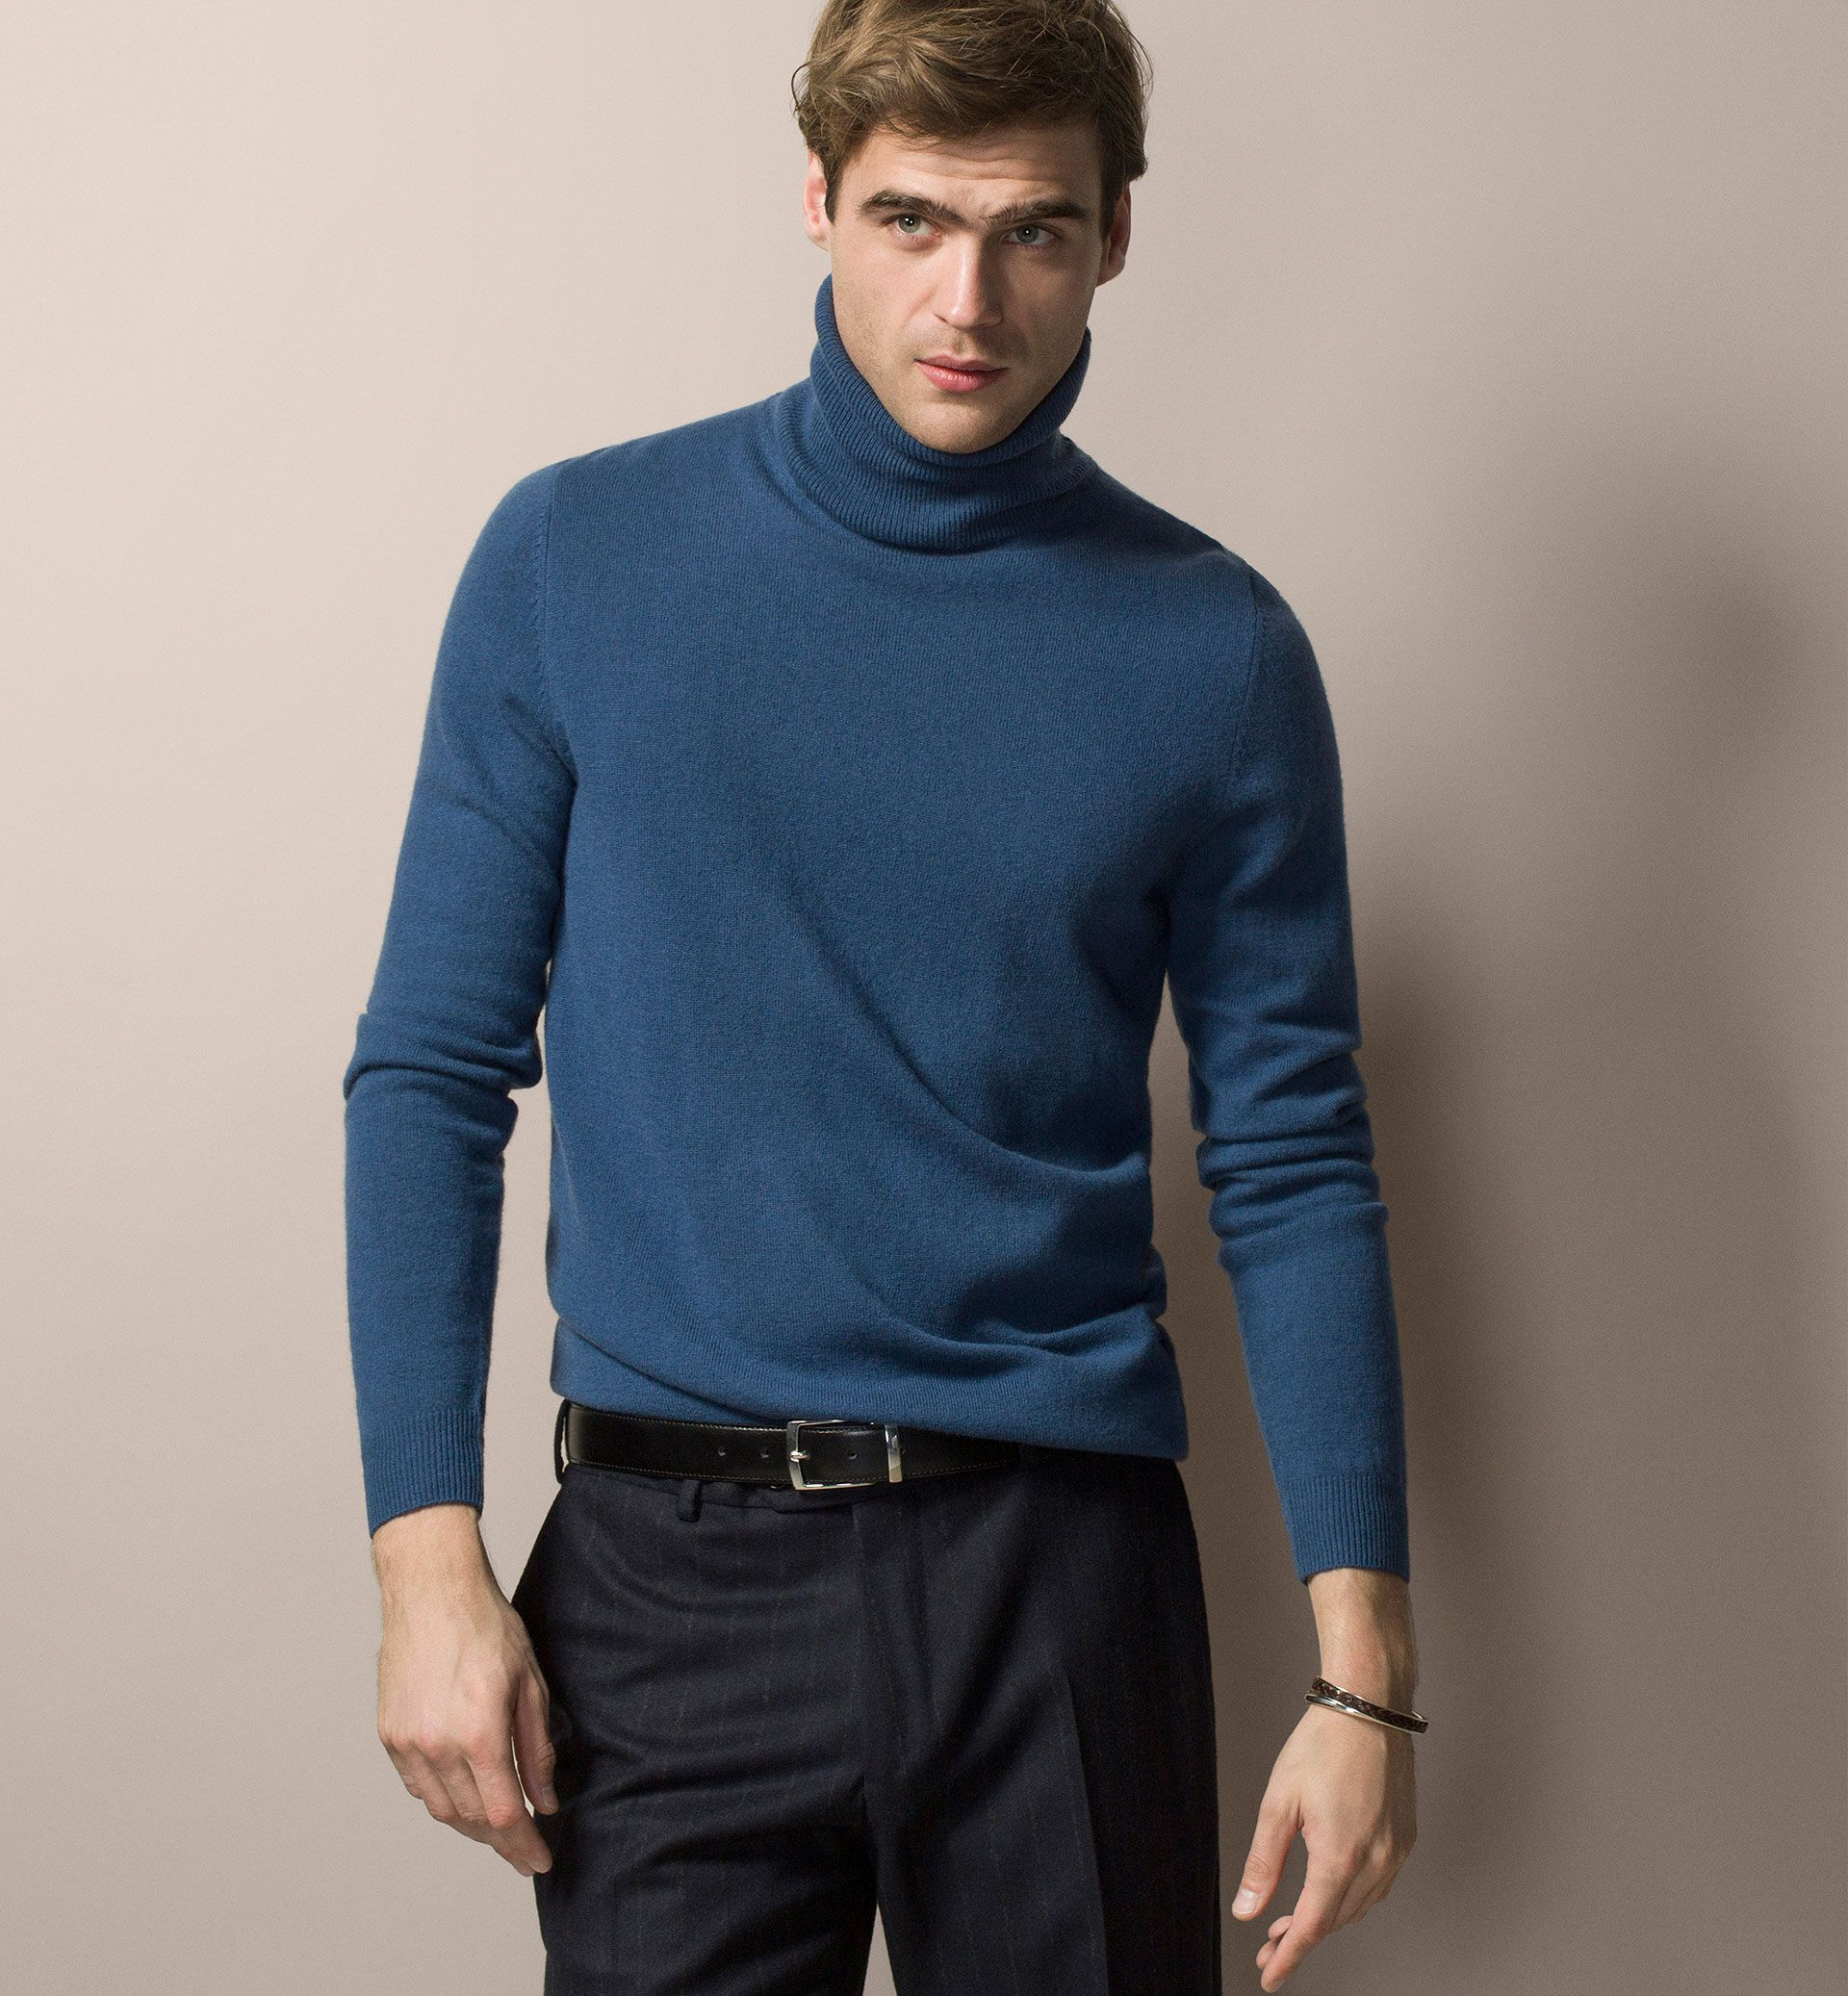 Men\u0027s Winter sale jumpers at Massimo Dutti, must-haves for this season.  Discover men\u0027s grey, beige or black knit, turtleneck and V-neck jumpers on  sale.